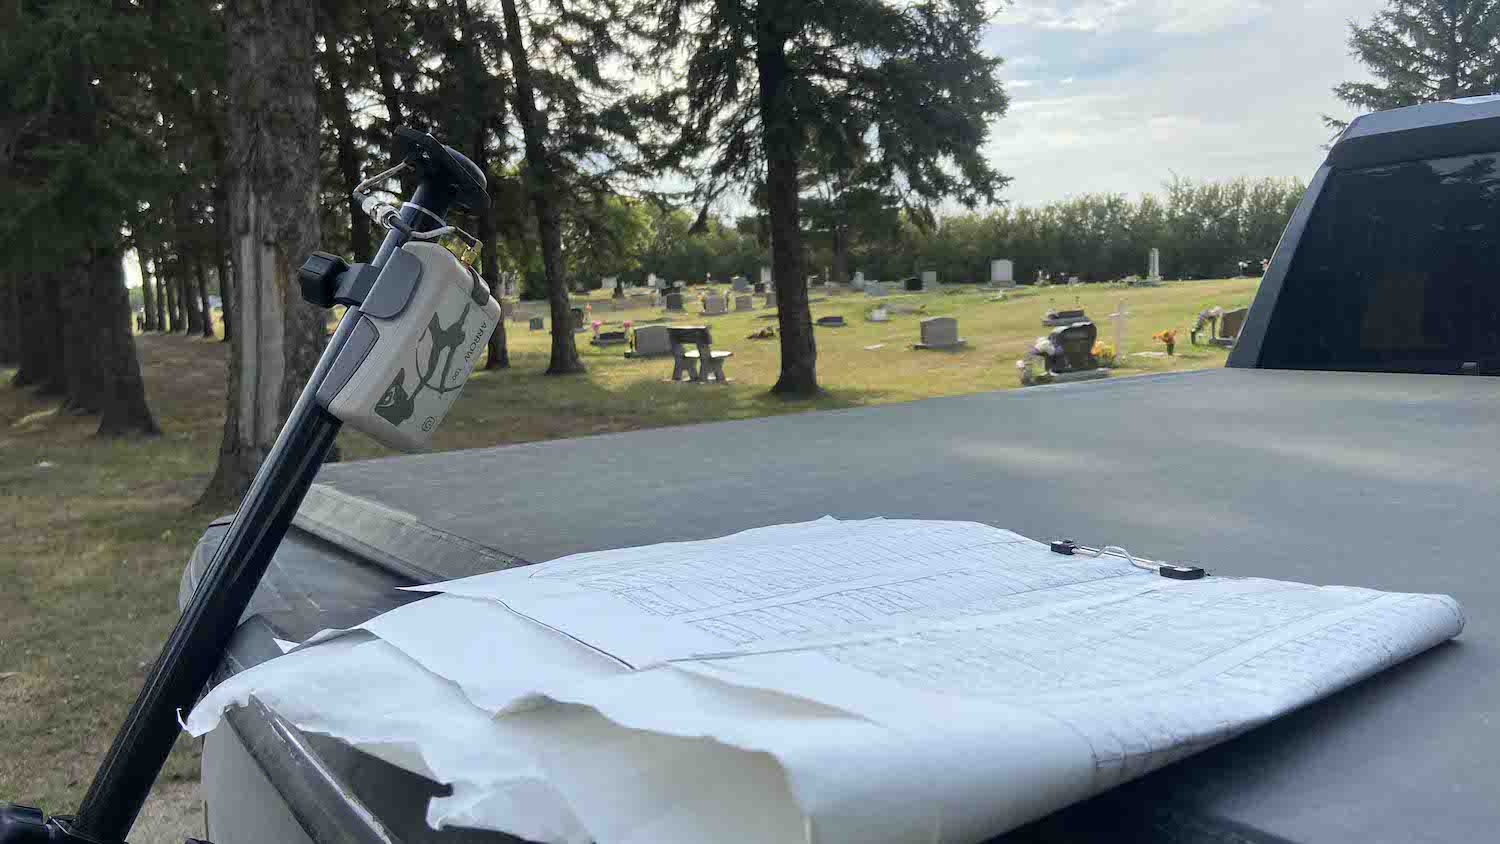 Altheritage uses an Arrow 100 GNSS receiver to map graveyard plots